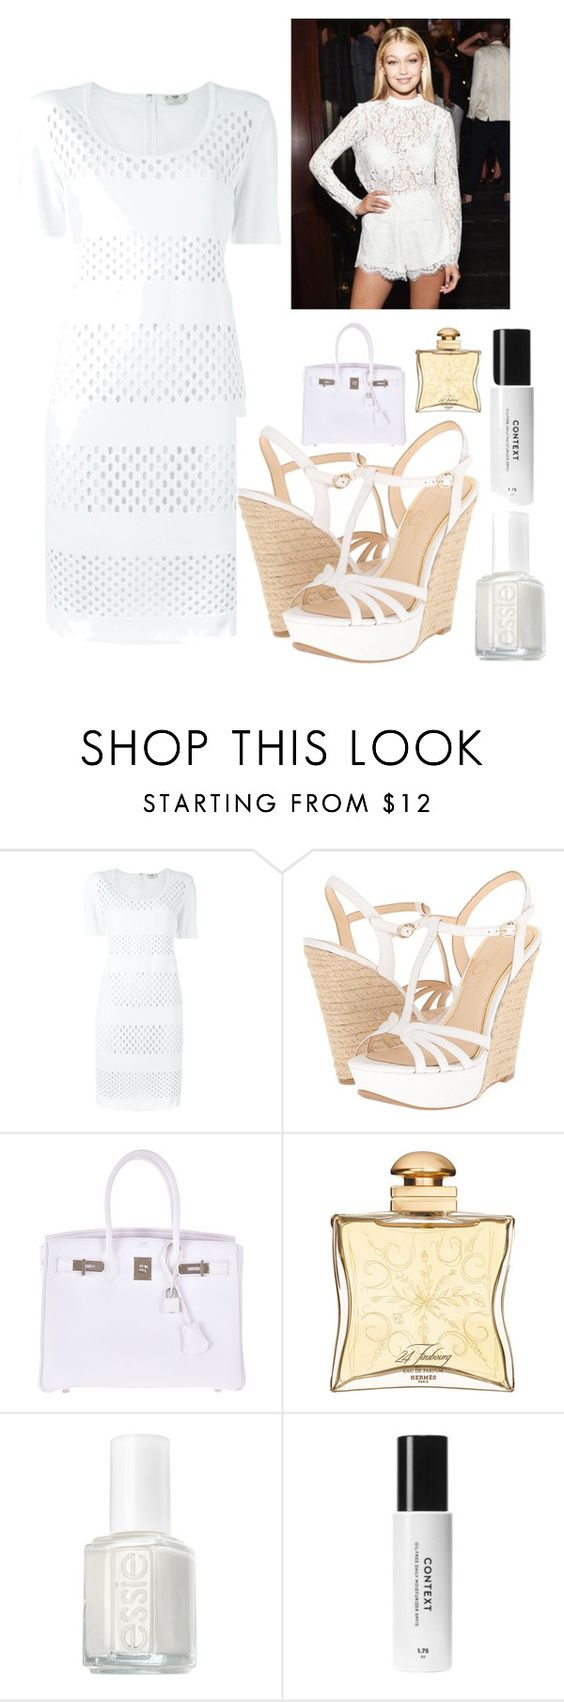 """""""Summer"""" by kotnourka ❤ liked on Polyvore featuring Fendi, Jessica Simpson, Hermès and Essie"""